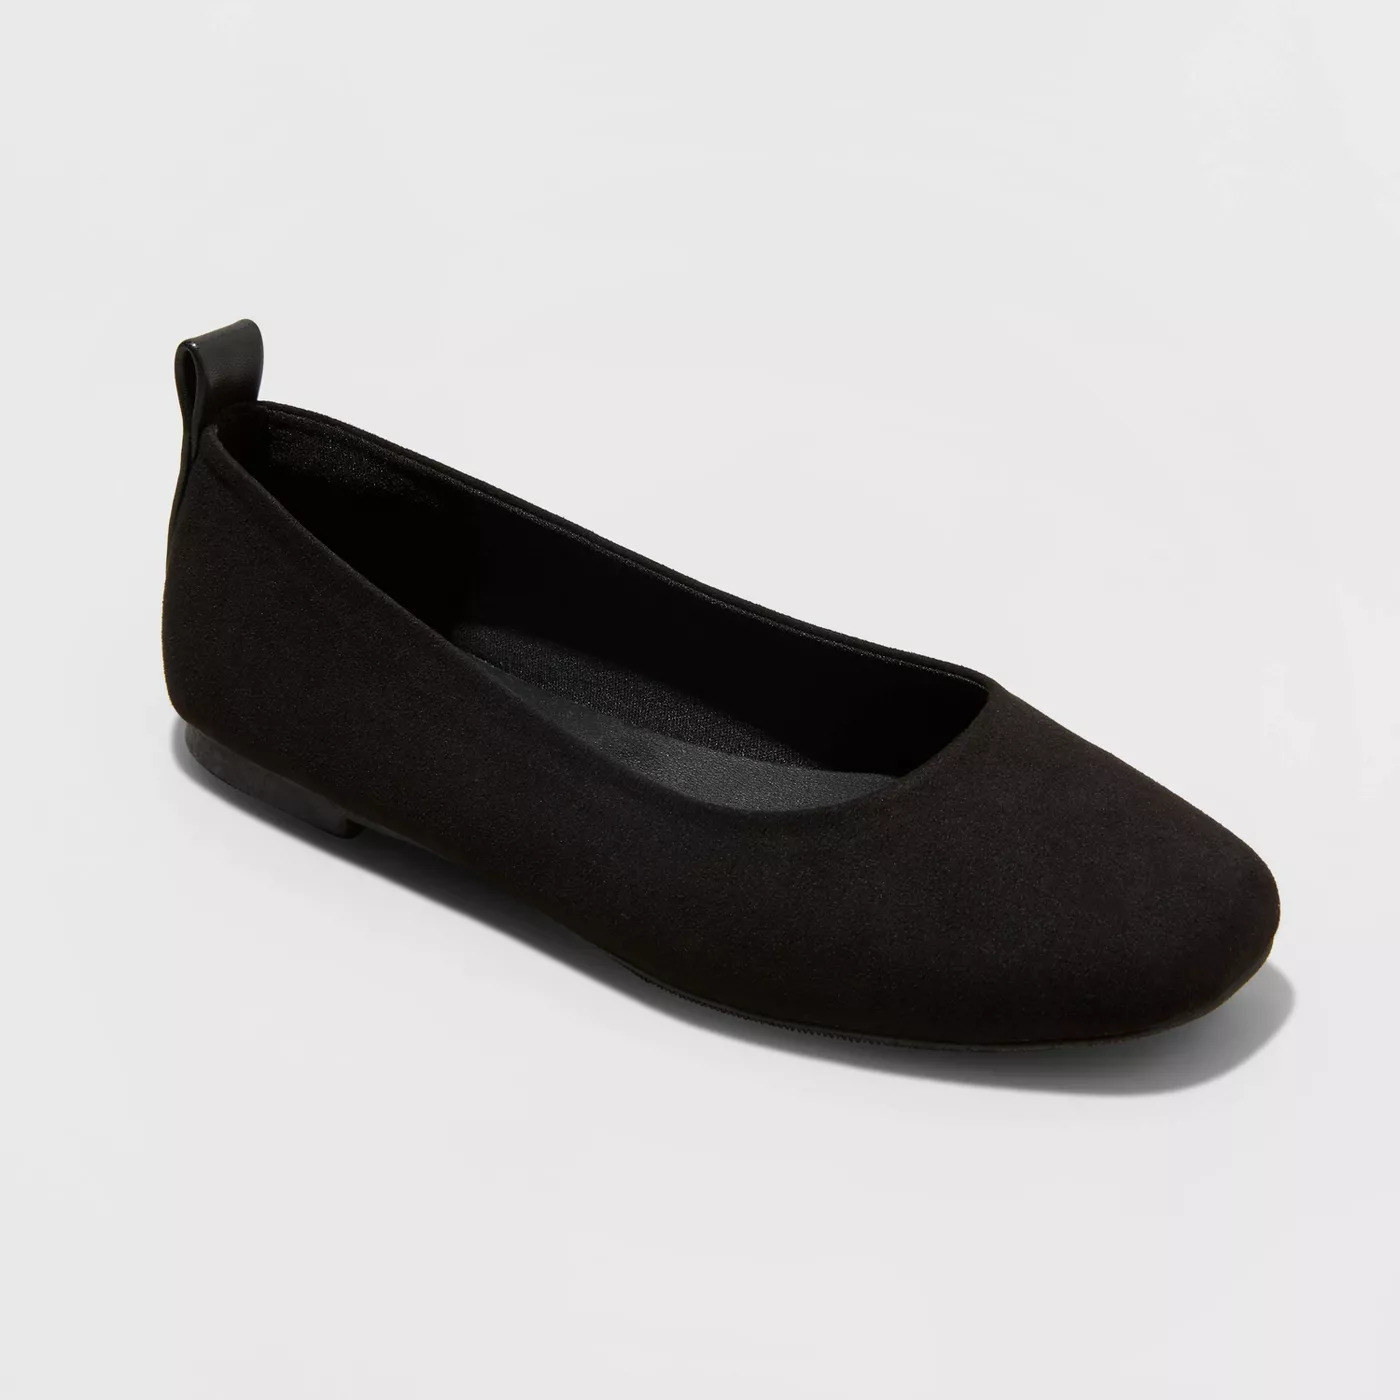 A black flat with a rounded toe